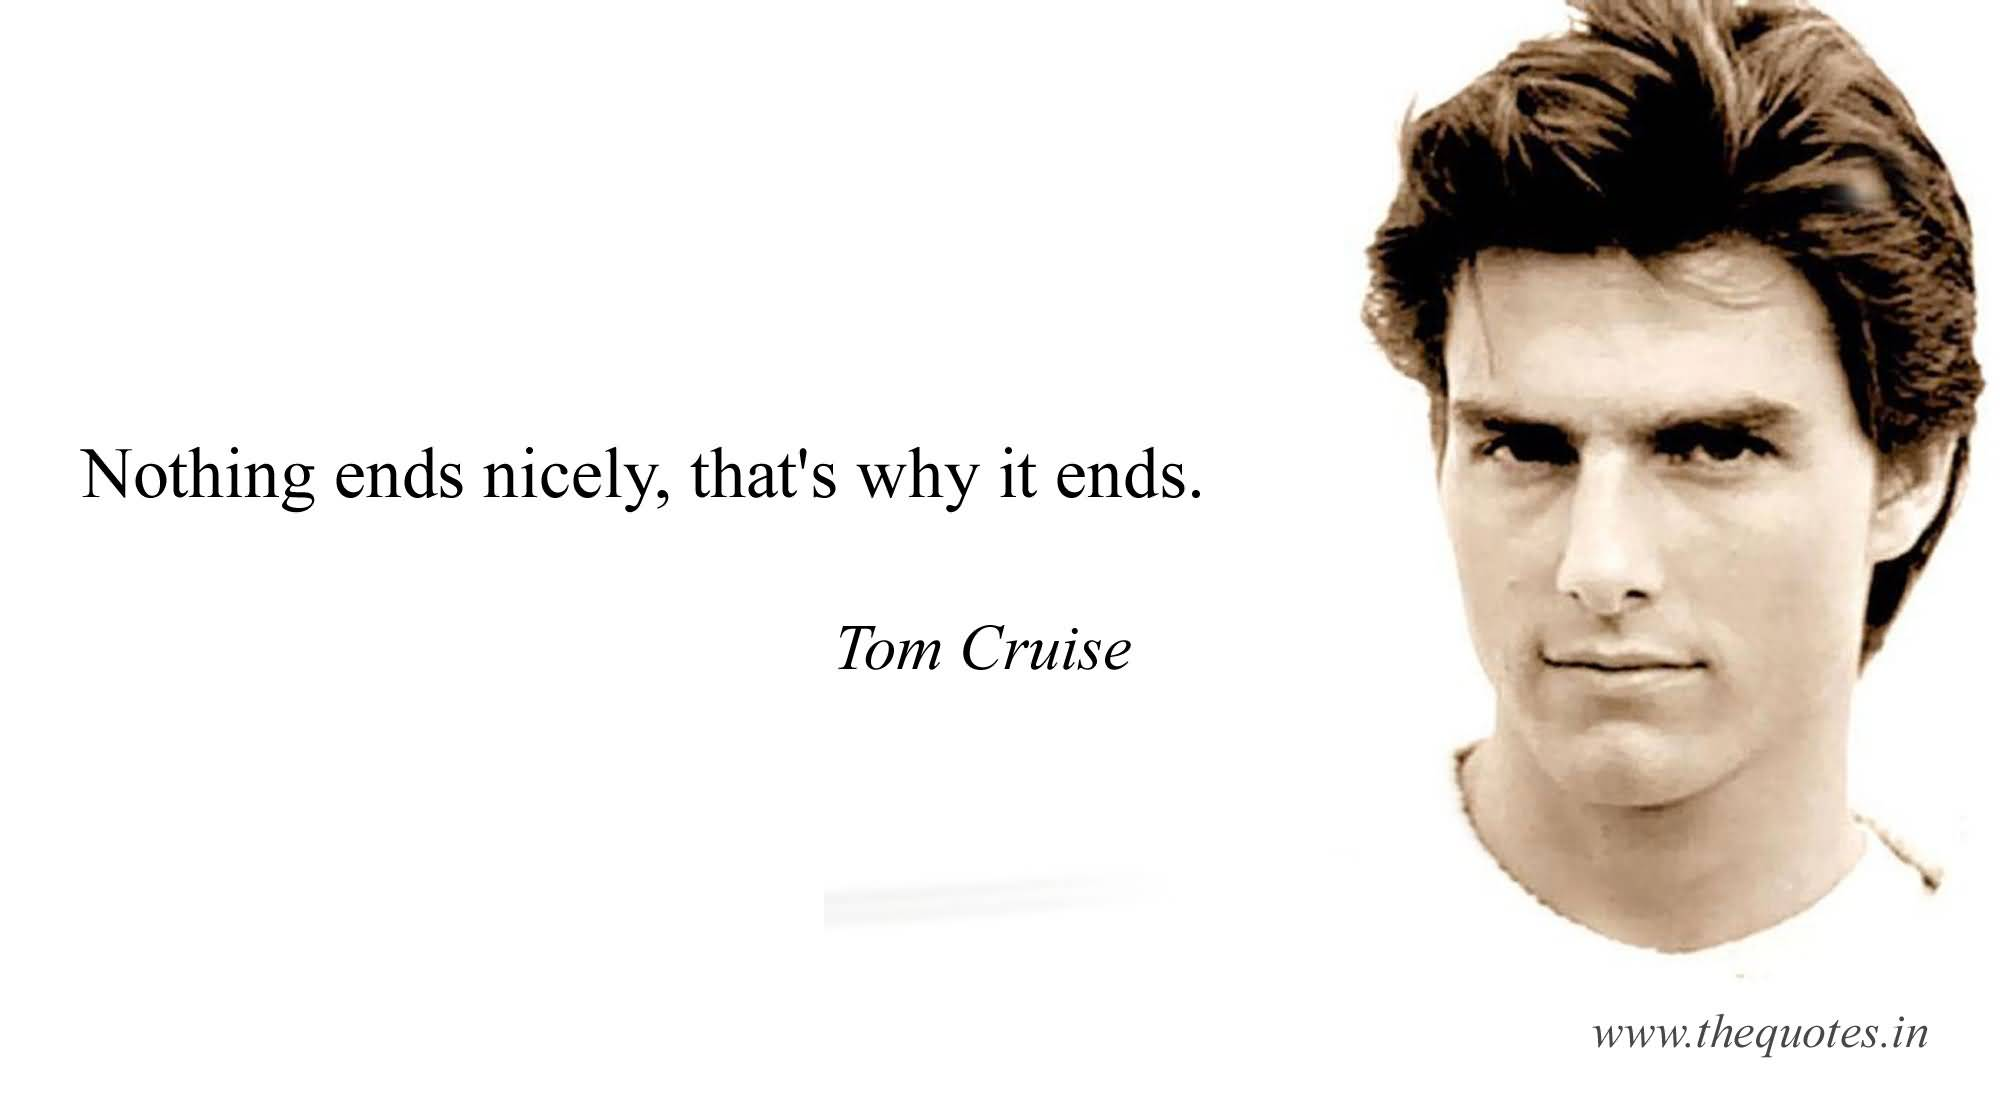 Nothing Ends Nicely, That's Tom Cruise Quotes